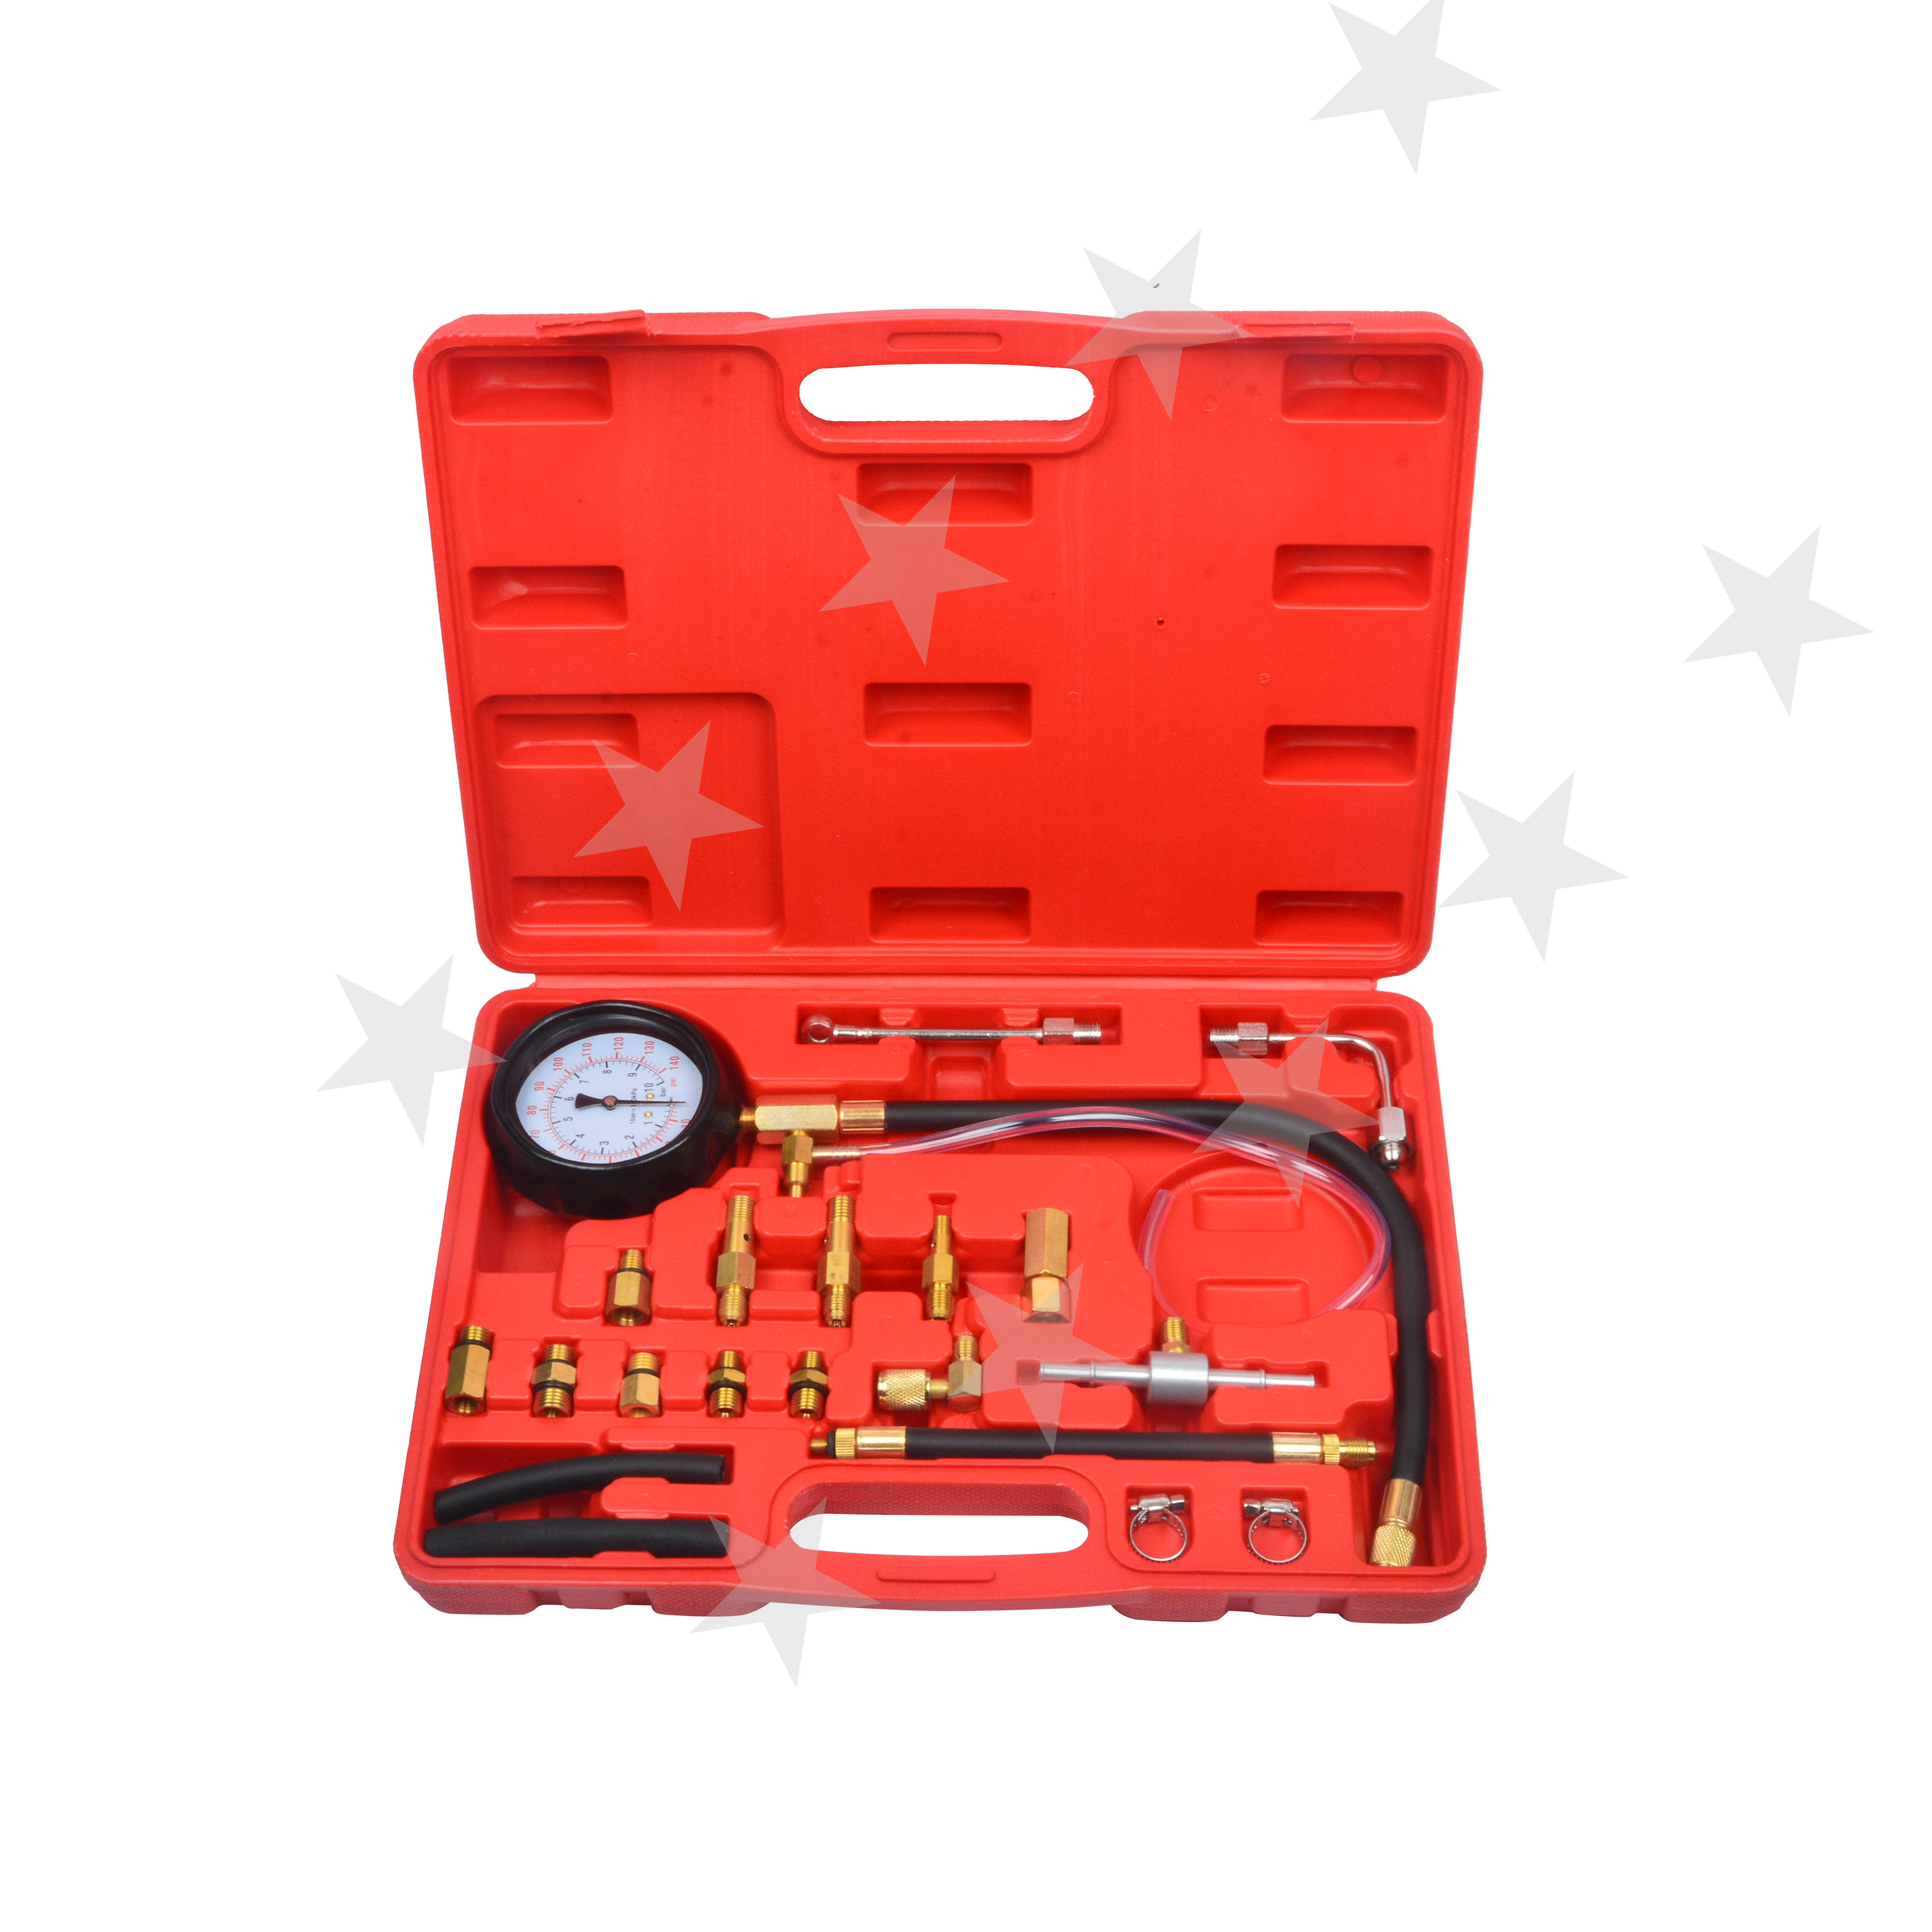 0-140PSI Fuel Injection Pump Pressure Test Injector Tester Pressure Gauge Kit For Most Of Cars And Trucks